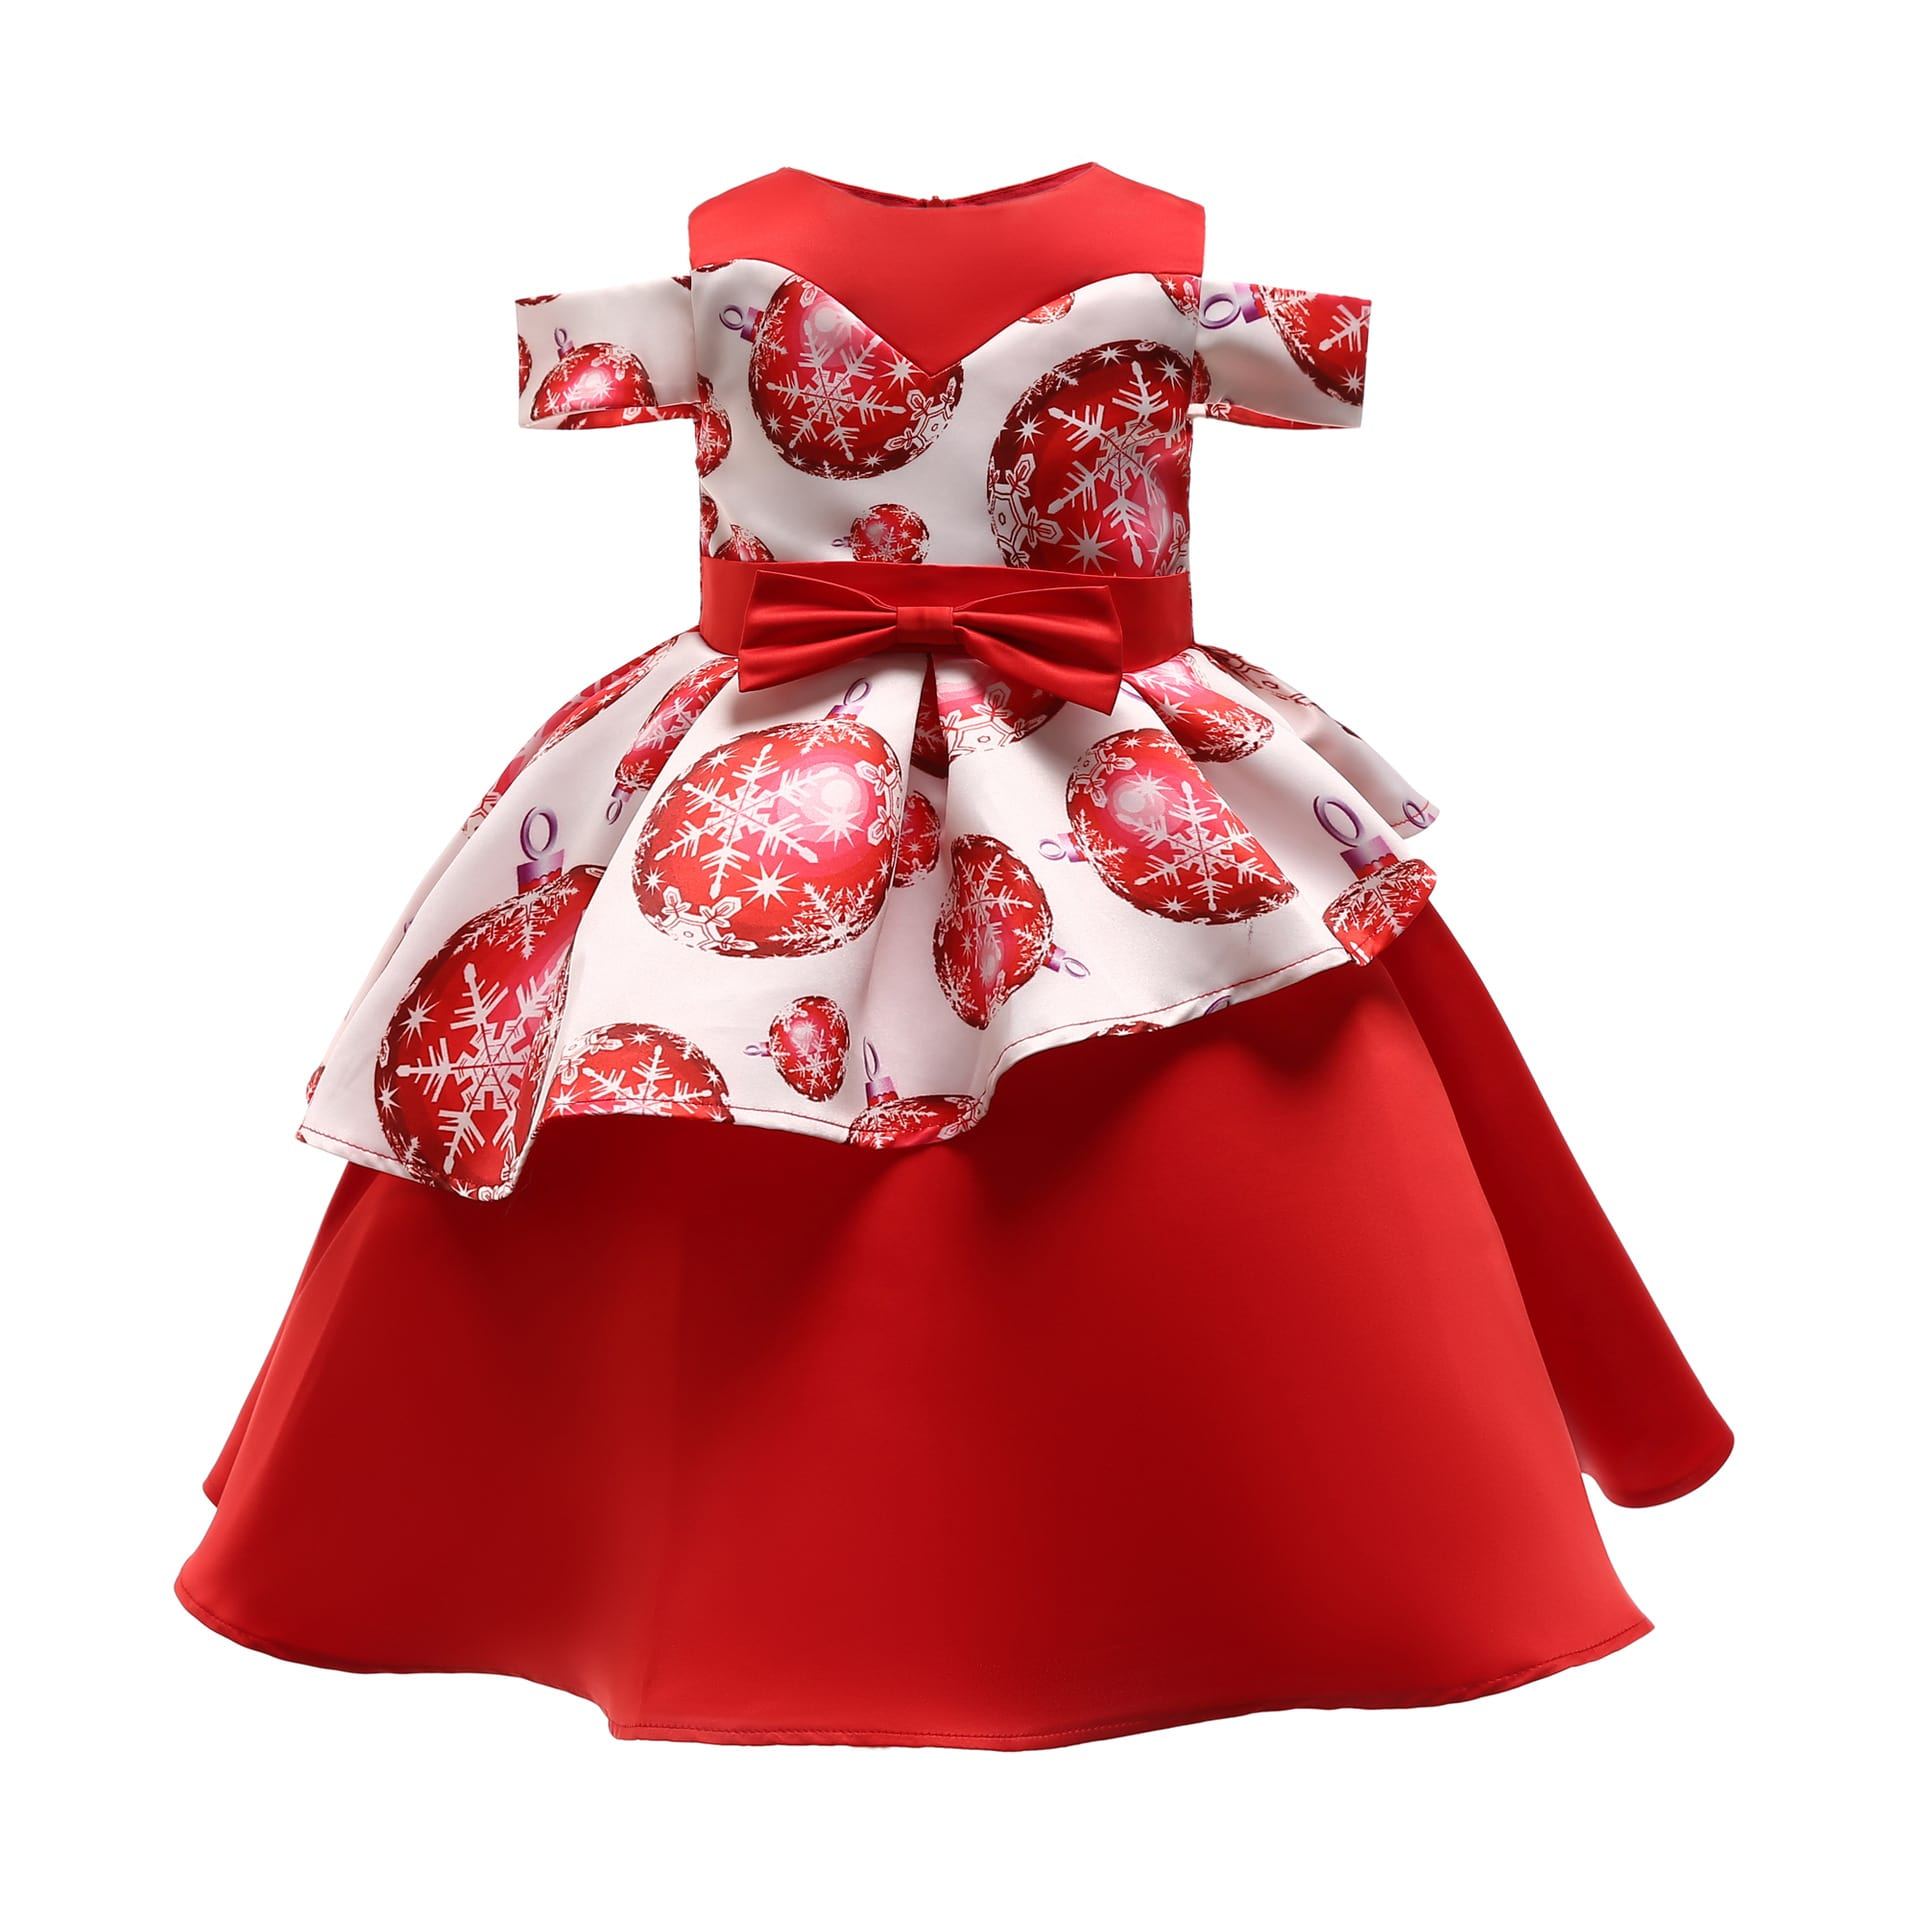 89fb64931 First Christmas Outfit for Baby Girls Between 1-8 years